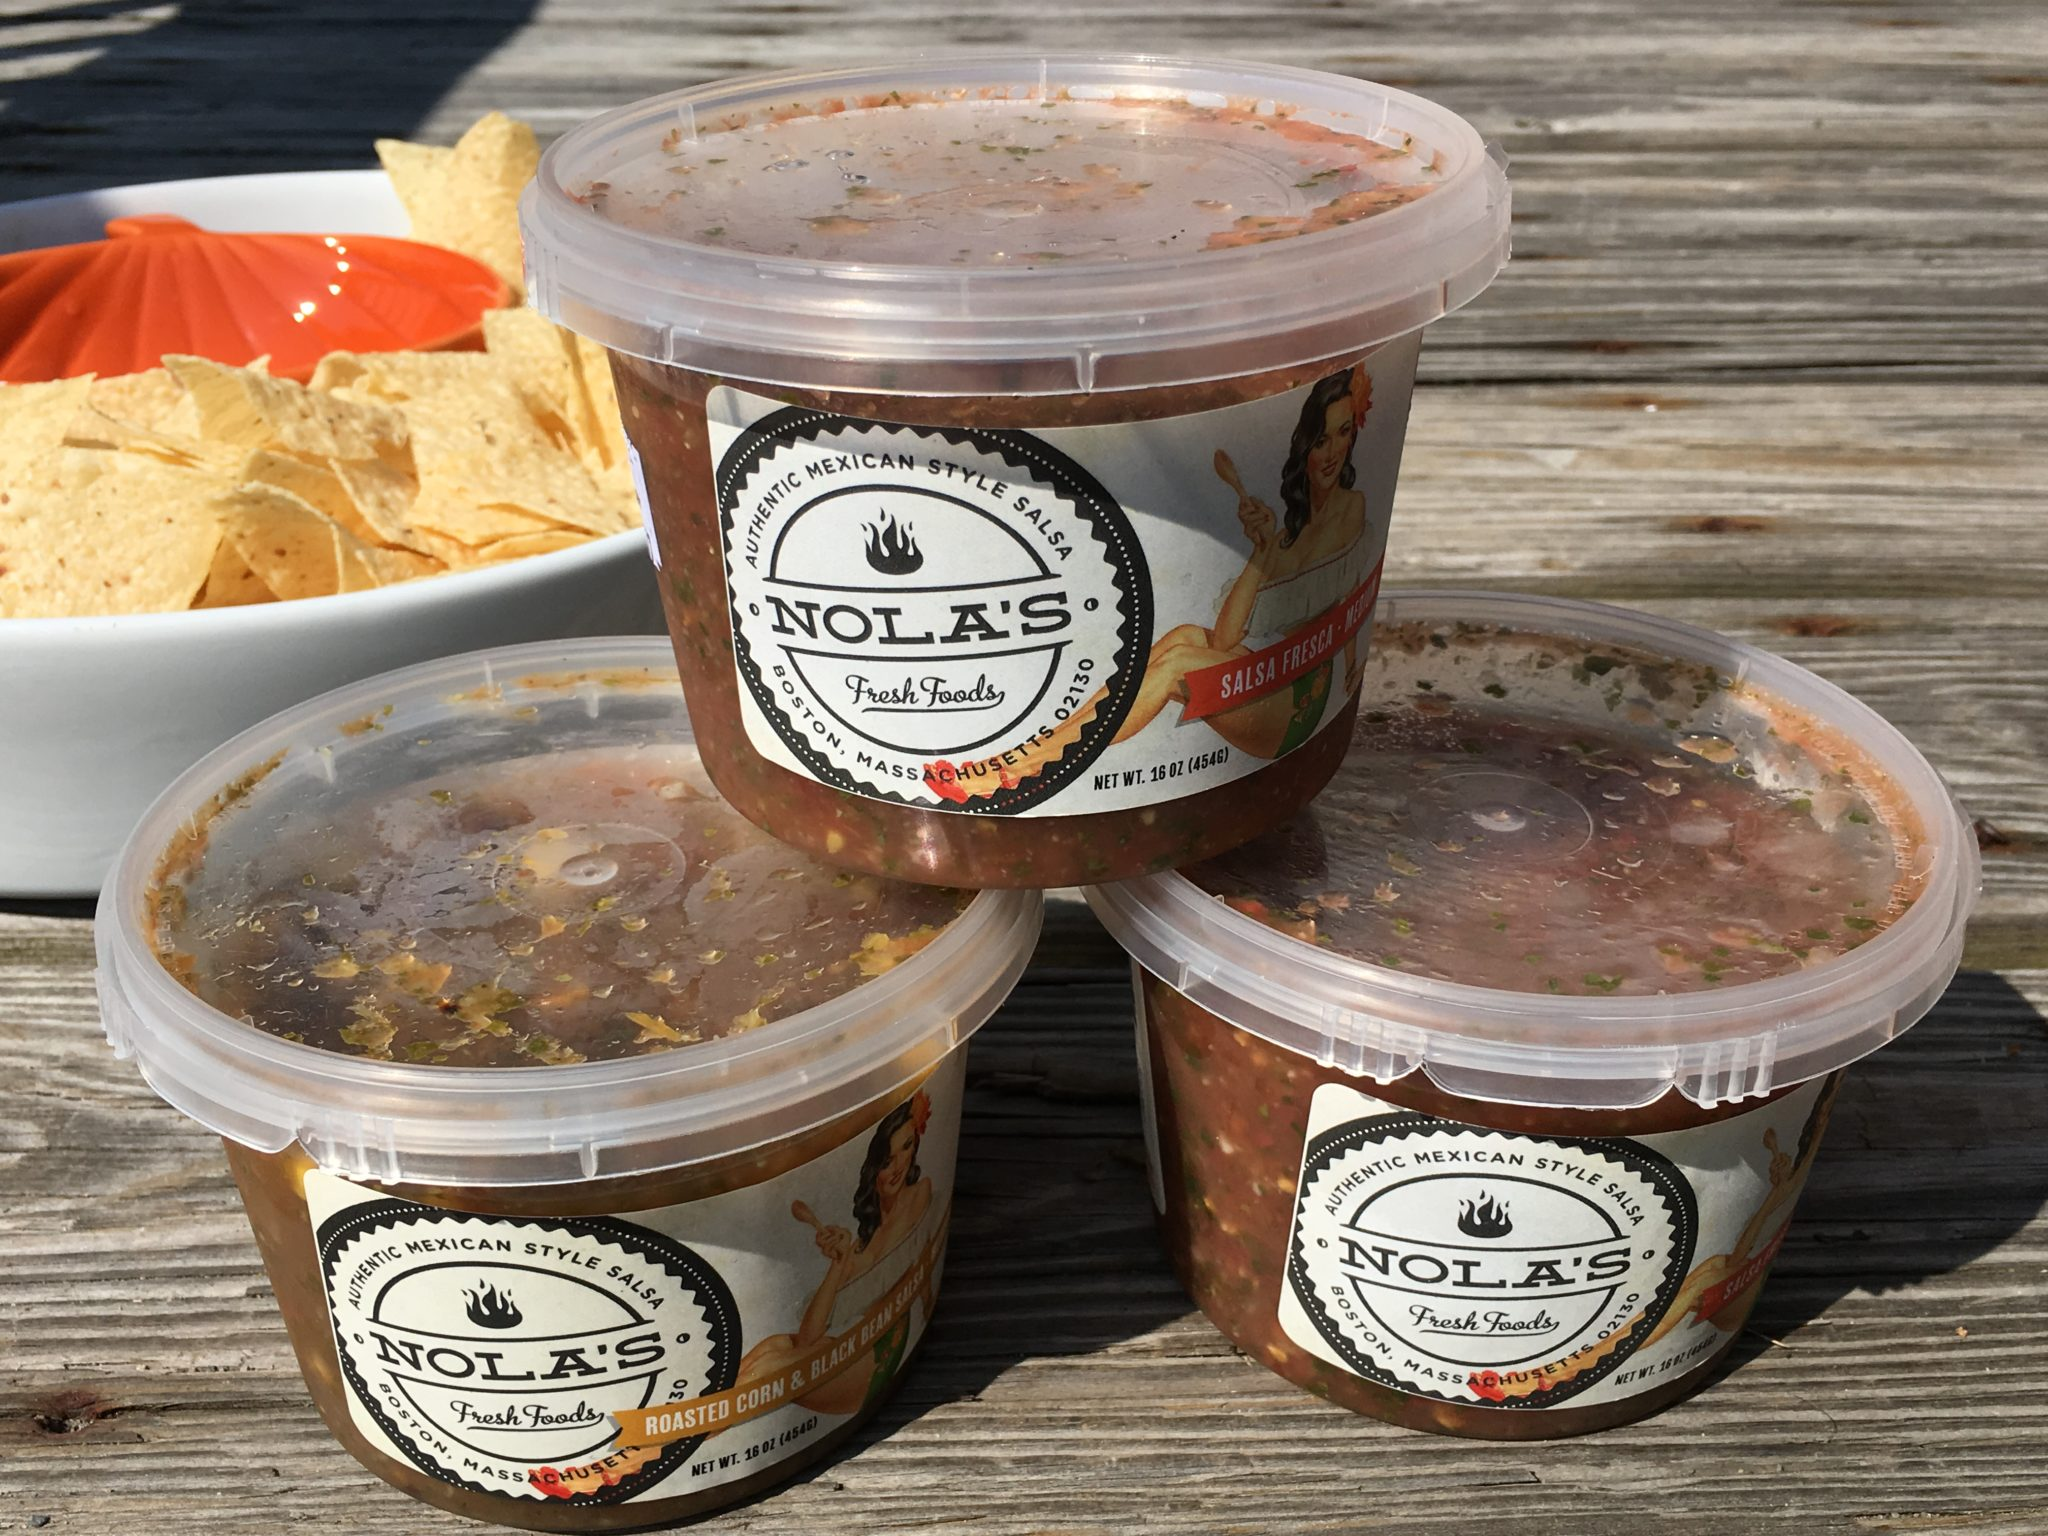 Nola's Fresh Foods salsa is an authentic Mexican salsa. No artificial preservatives, colors or flavors, no sugar and no oils & they're Vegan and Gluten Free.